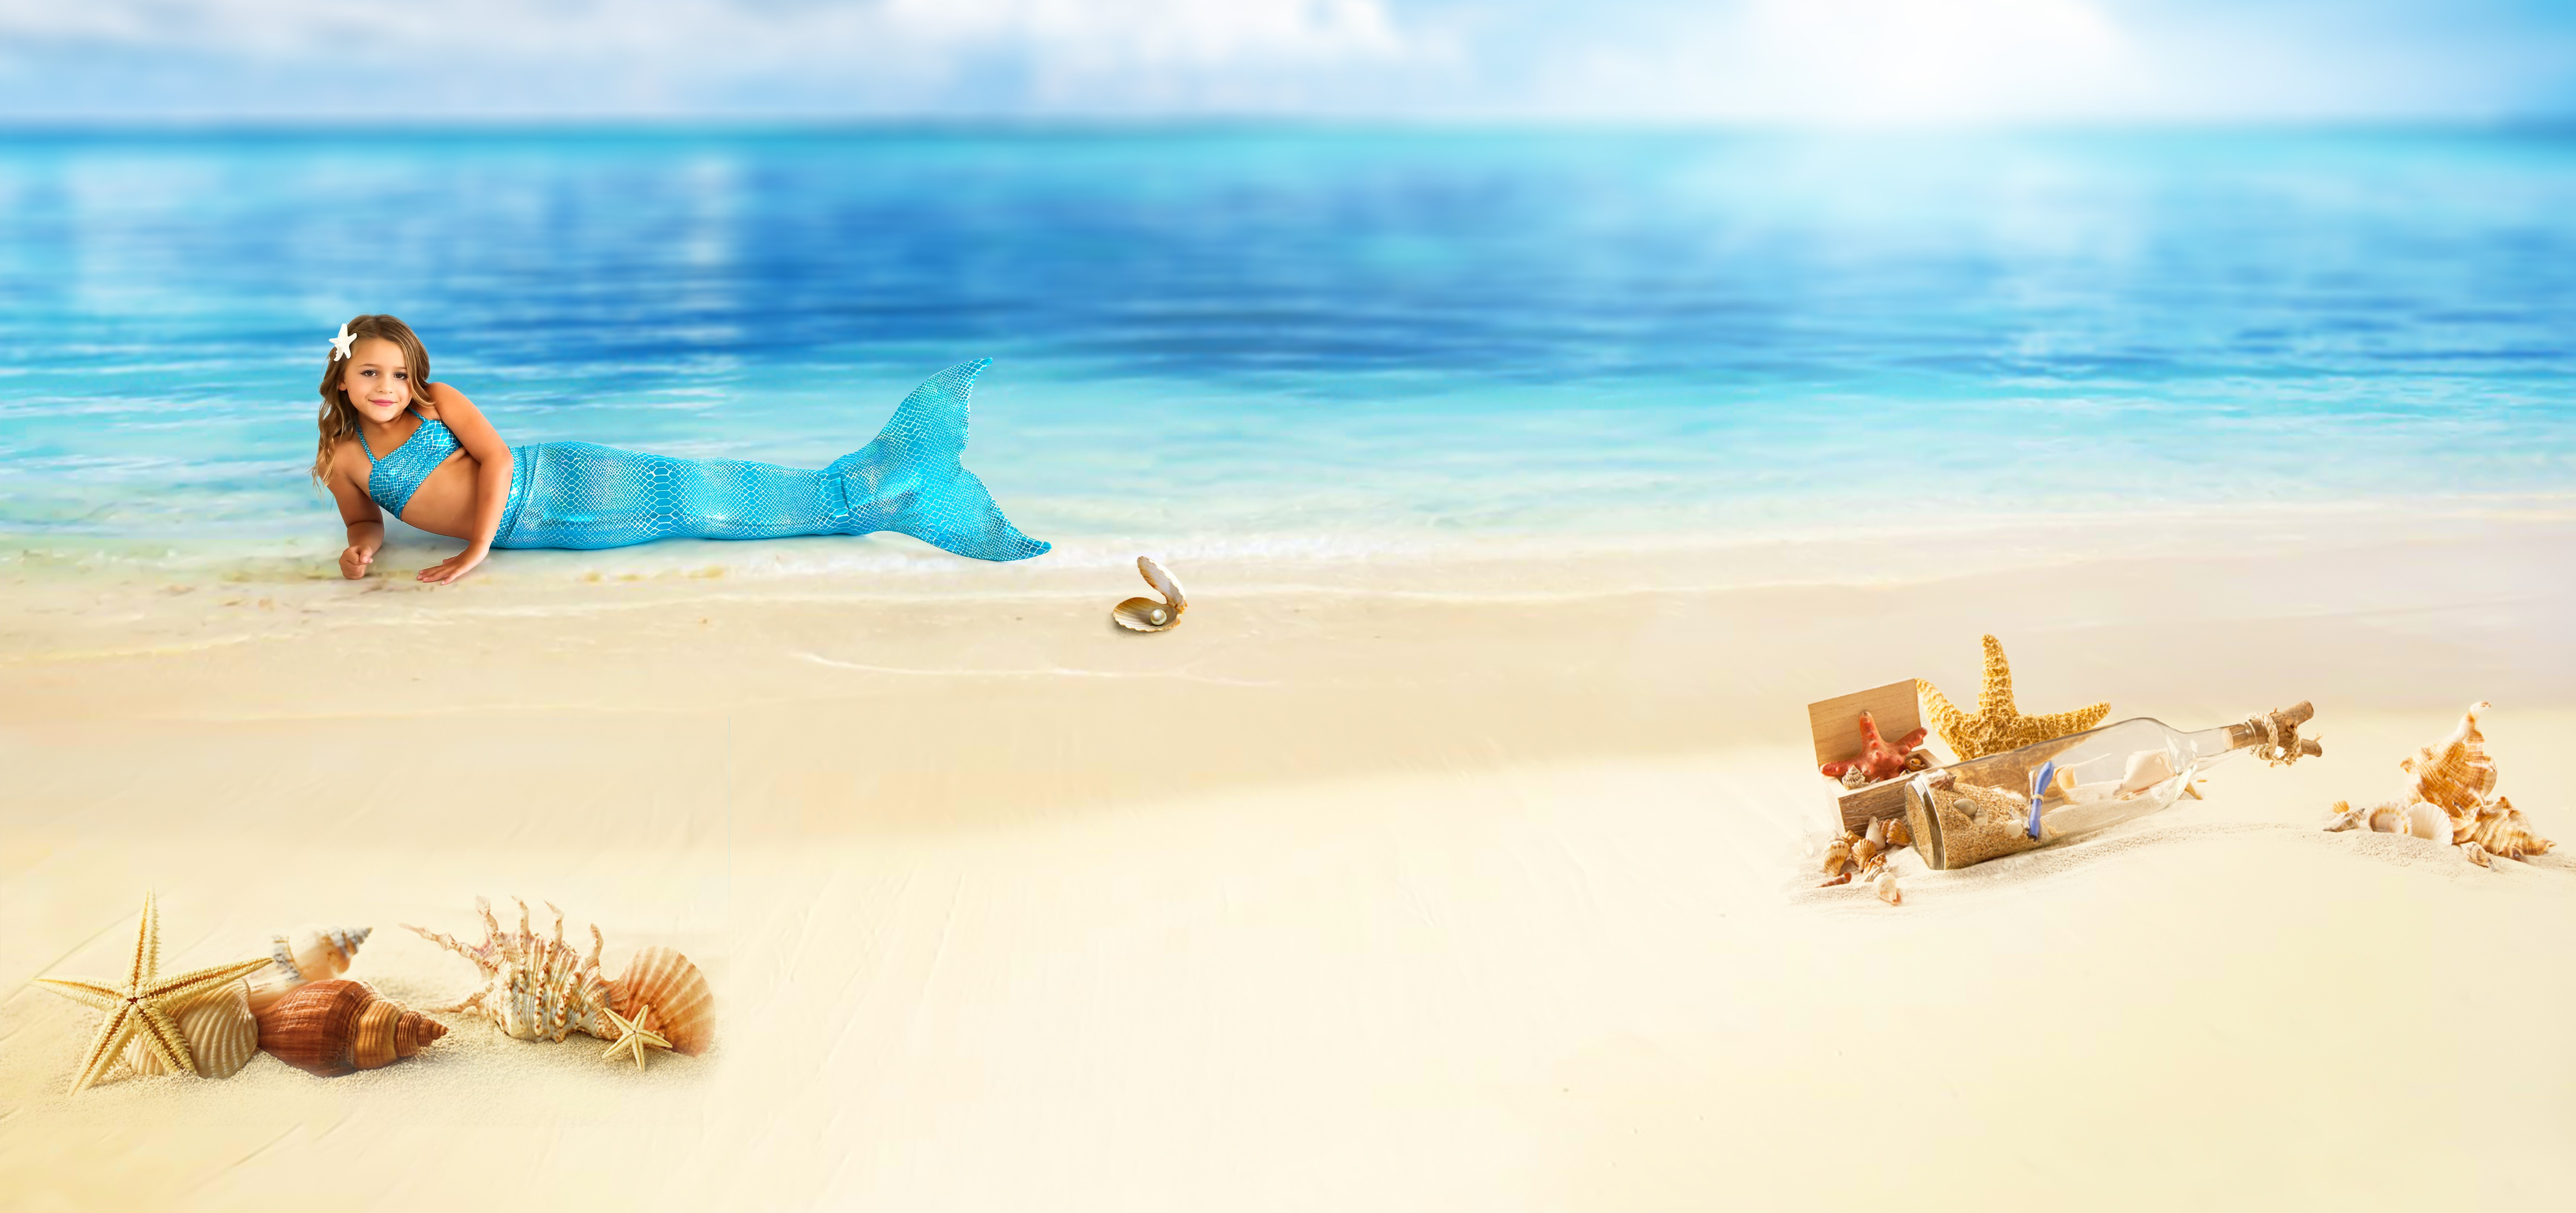 Web Banner for Mermaid Tail Shop